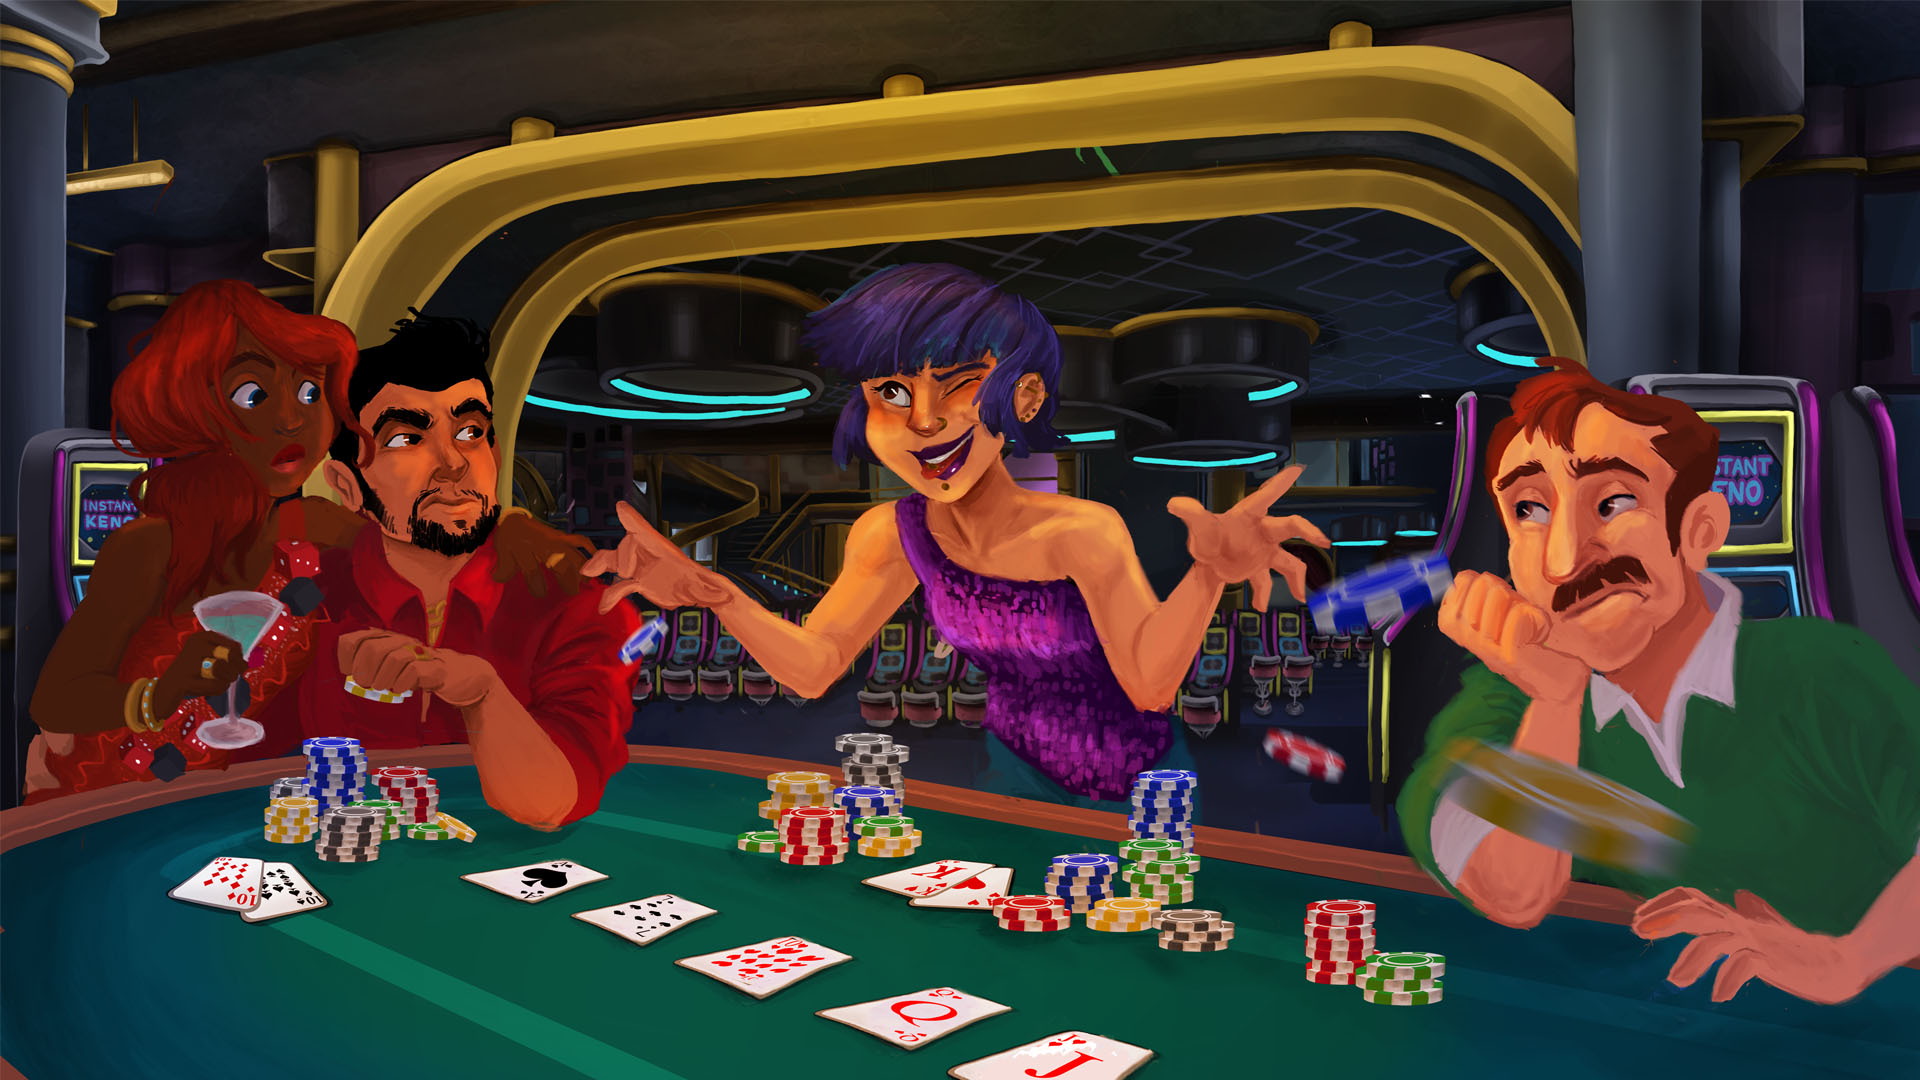 4 kings casino poker video poker